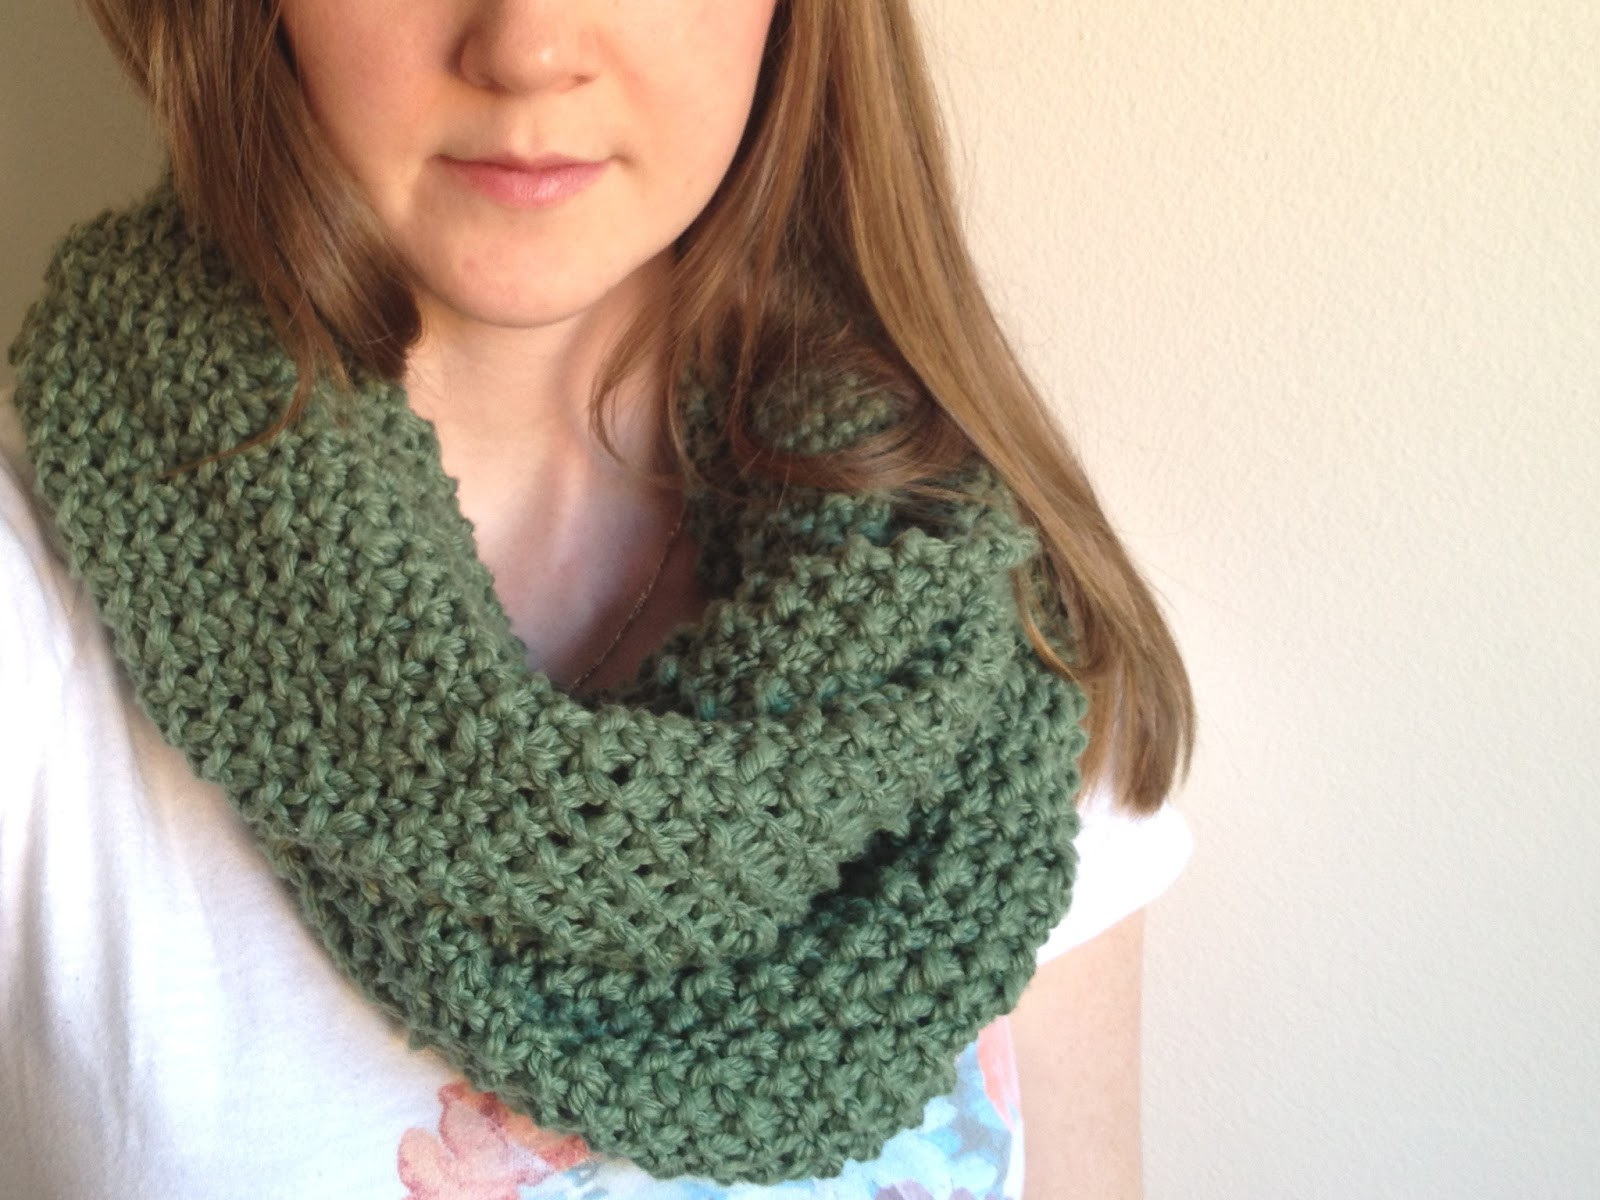 Luxury Tinselmint Free Infinity Scarf Pattern for Beginners Free Infinity Scarf Pattern Of Marvelous 48 Images Free Infinity Scarf Pattern